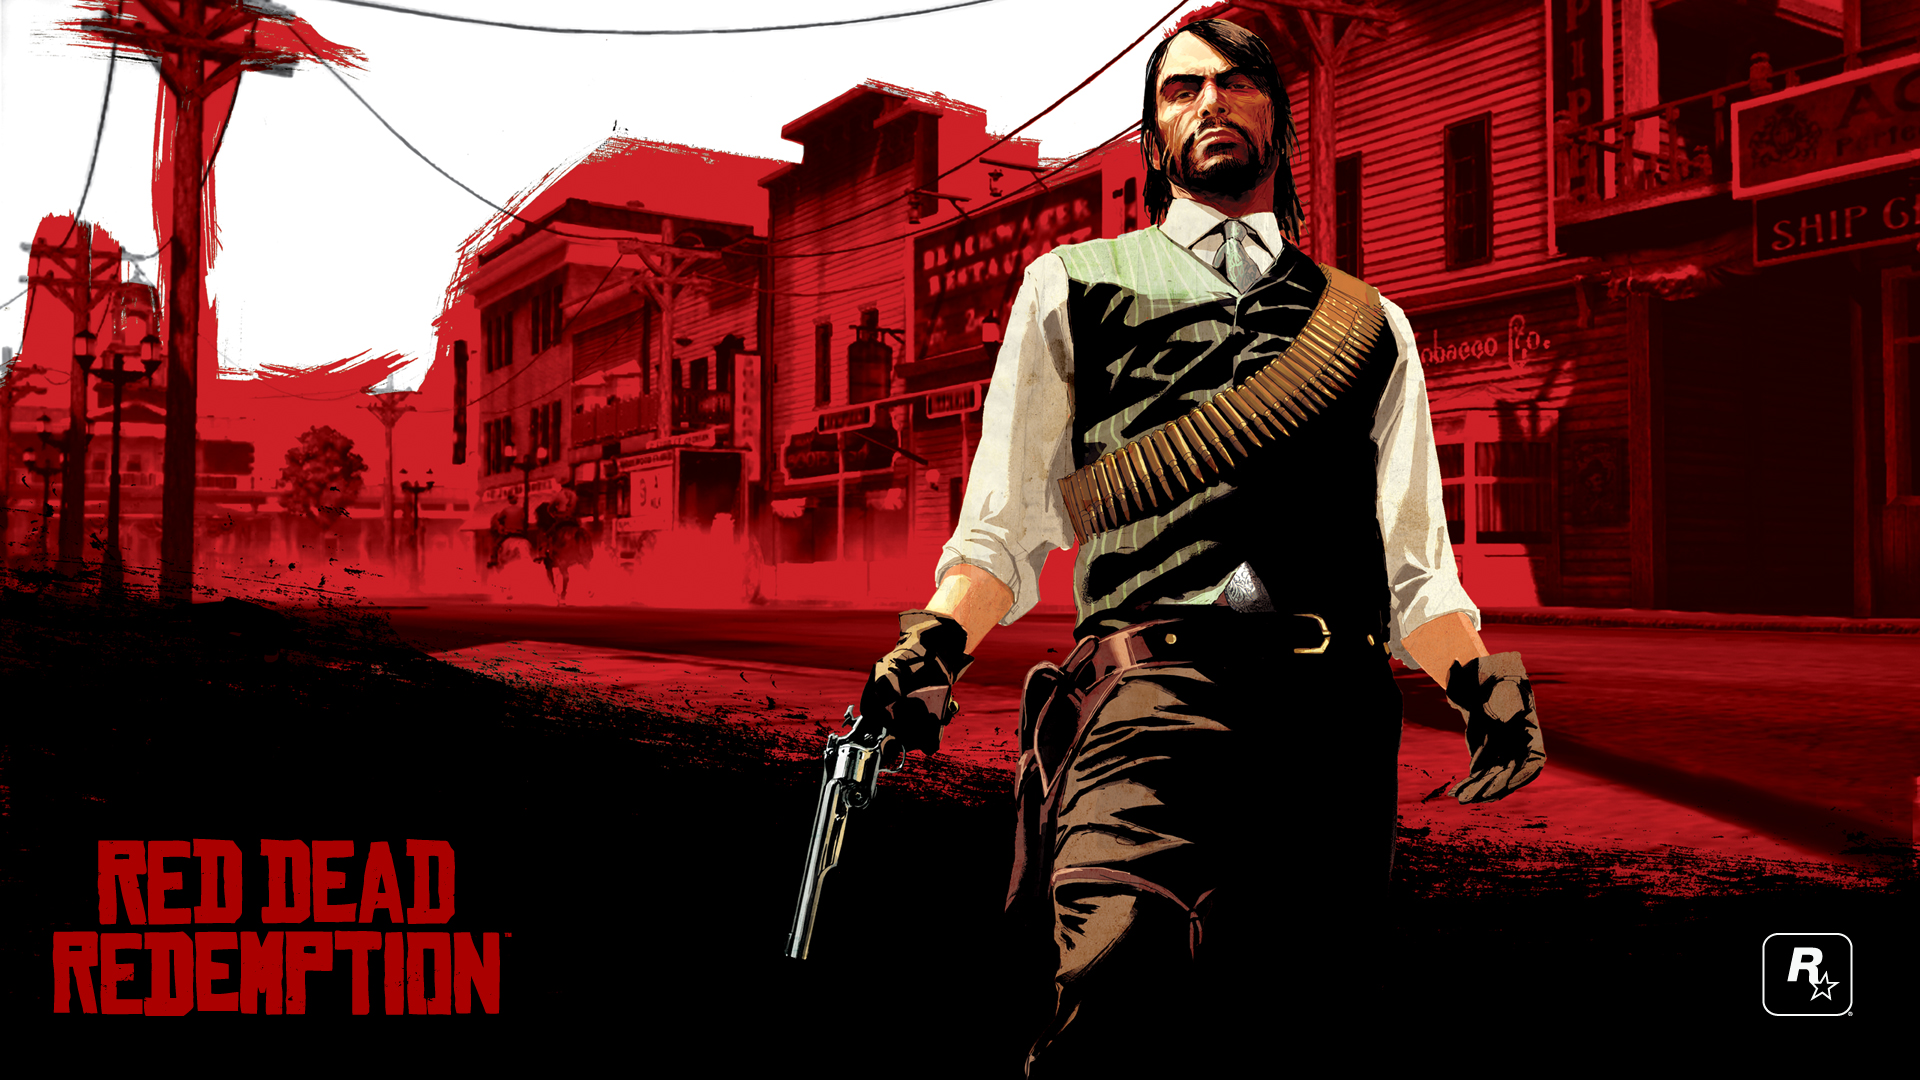 Red Dead Redemption 080216